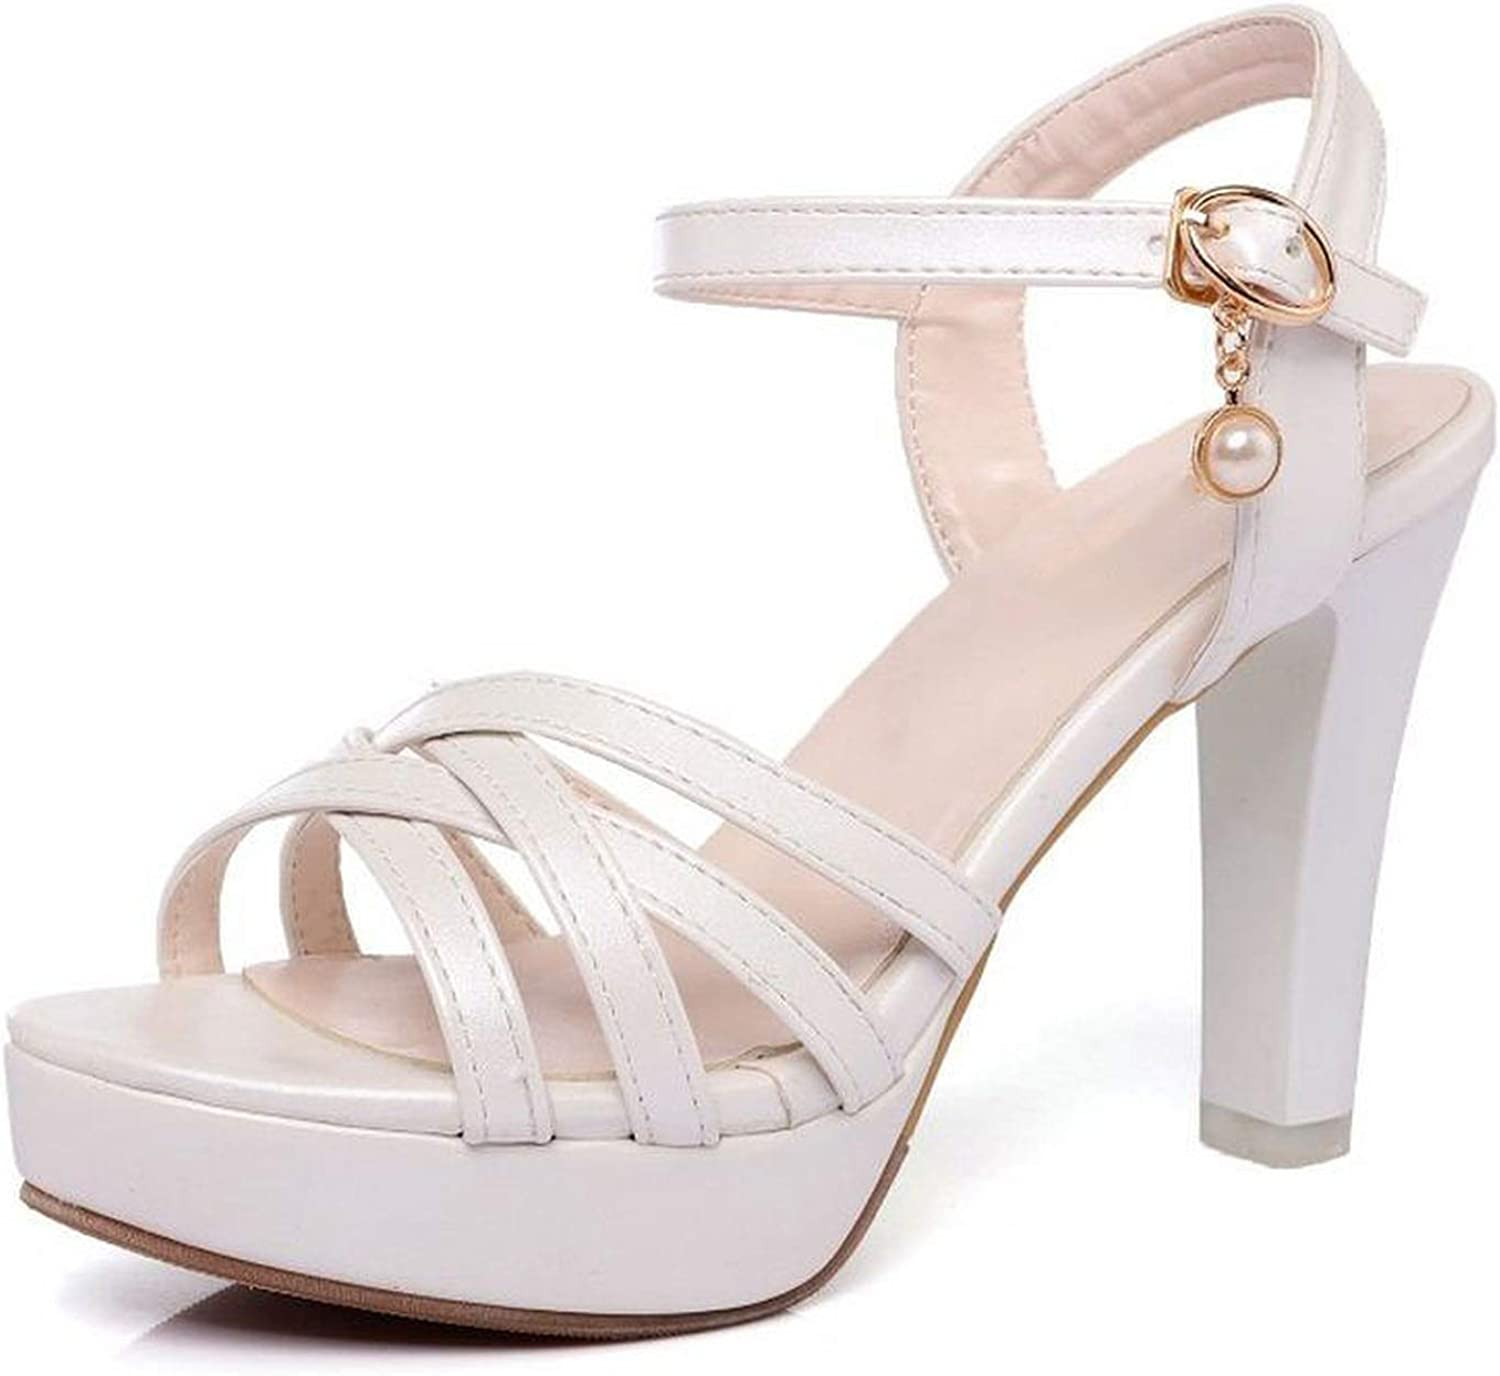 High Heel Sandals Ankle Strap Peep Toe Spike Heel Sandals Summer Daily shoes